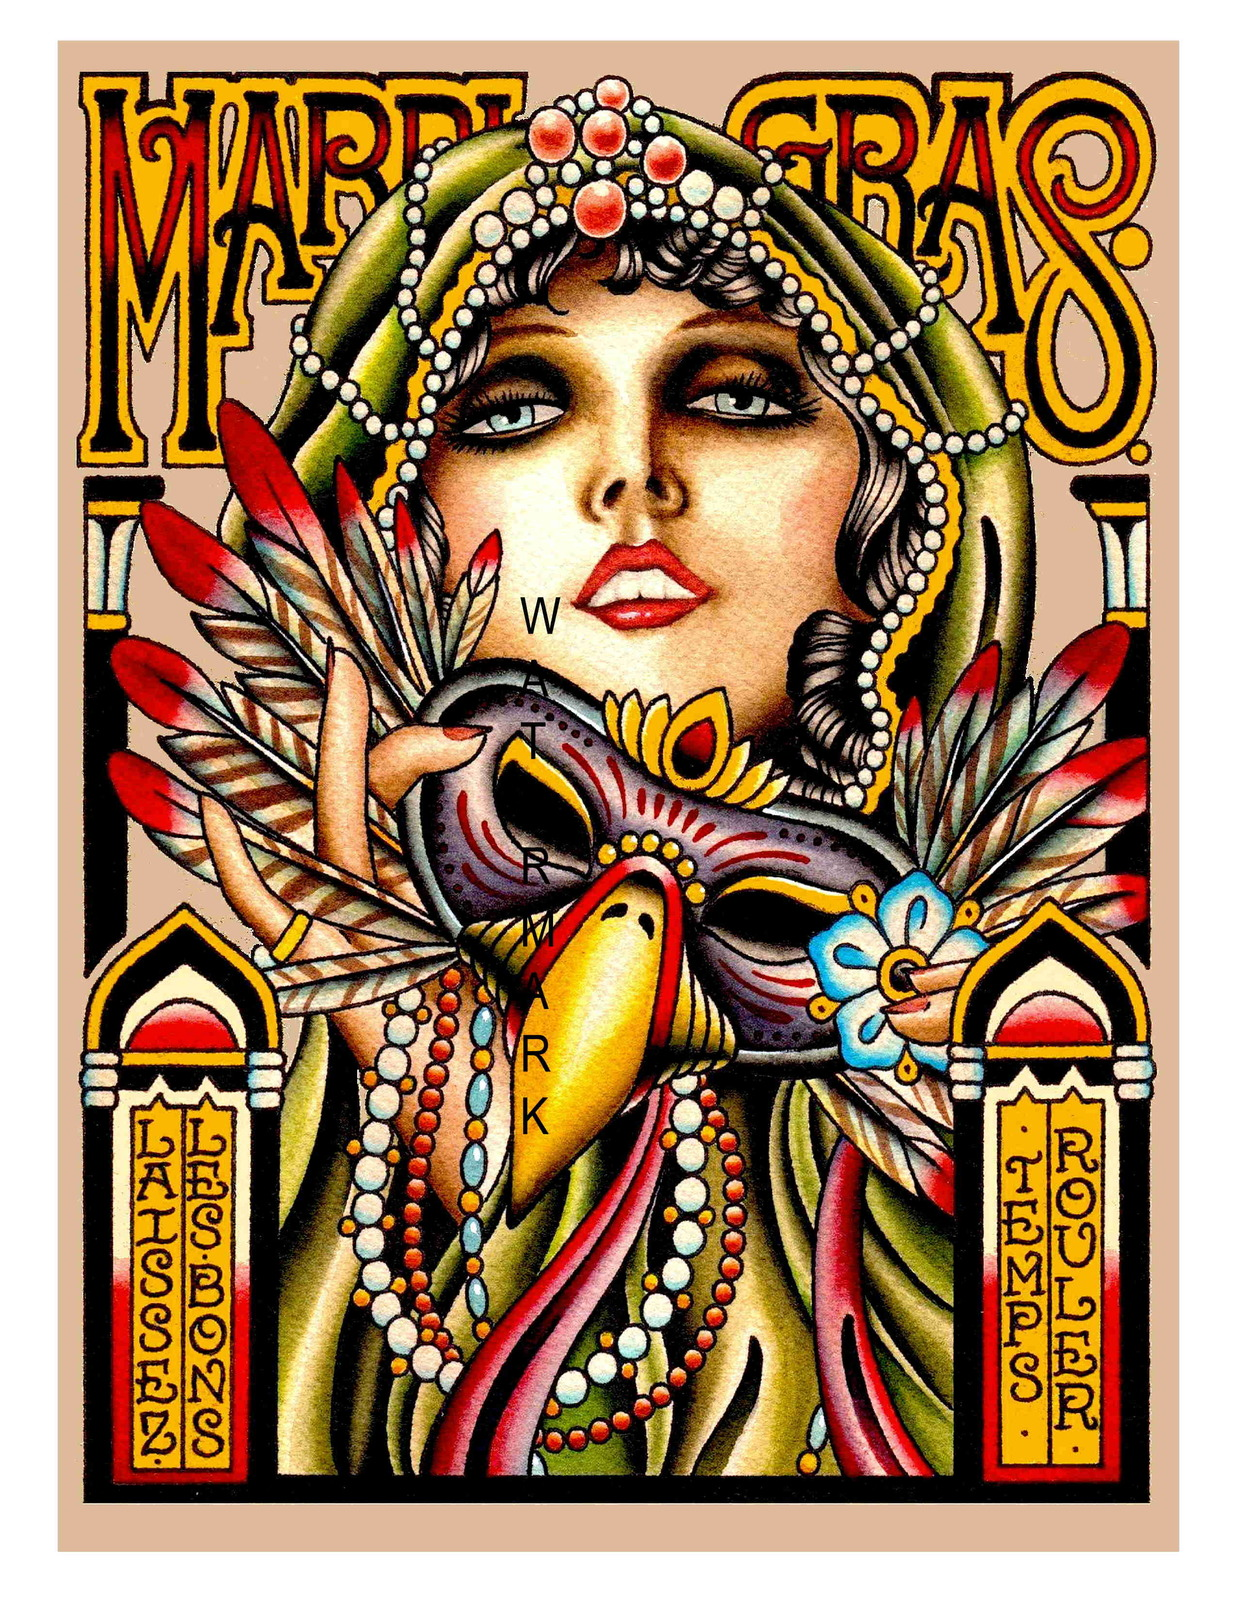 New Orleans Vintage Mardi Gras Advertising 13 x 10 inch Giclee CANVAS Print